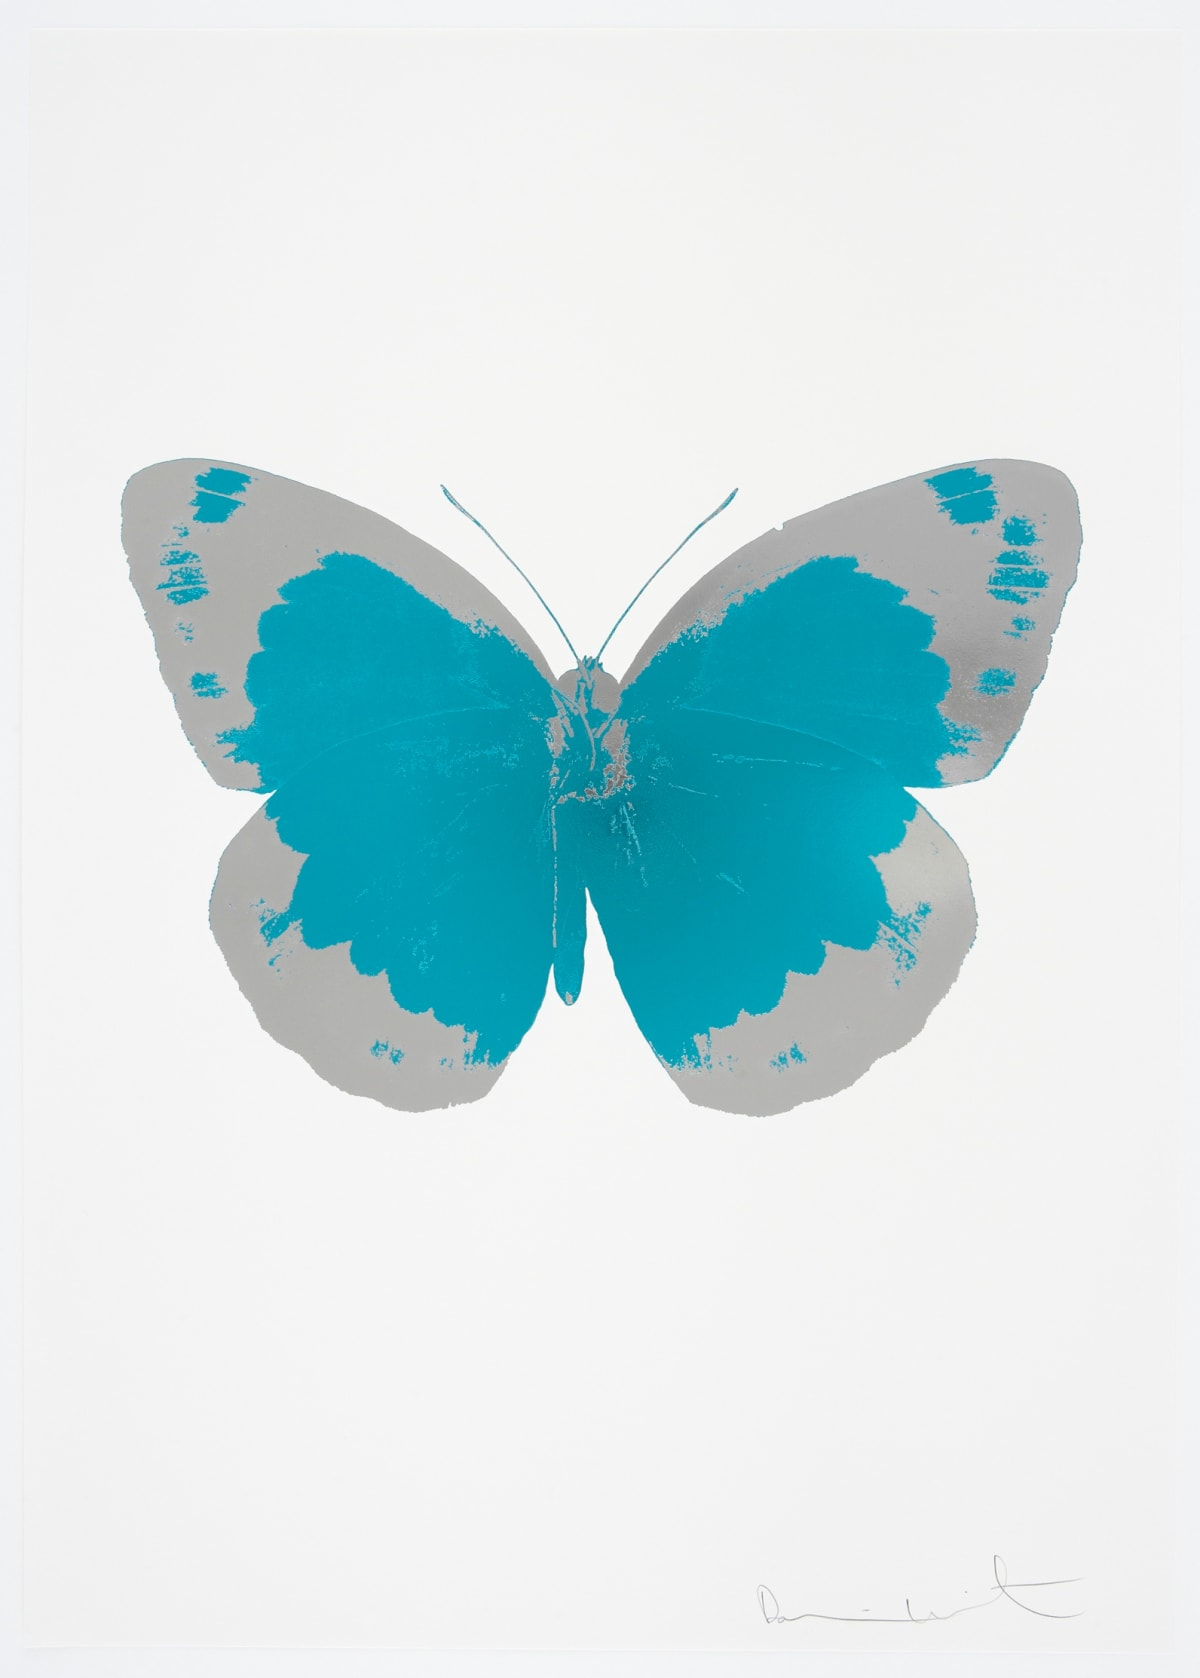 Damien Hirst The Souls II - Topaz/Silver Gloss/Blind Impression, 2010 2 colour foil block on 300gsm Arches 88 archival paper. Signed and numbered. Published by Paul Stolper and Other Criteria 72 x 51cm OC7846 / 658-29 Edition of 15